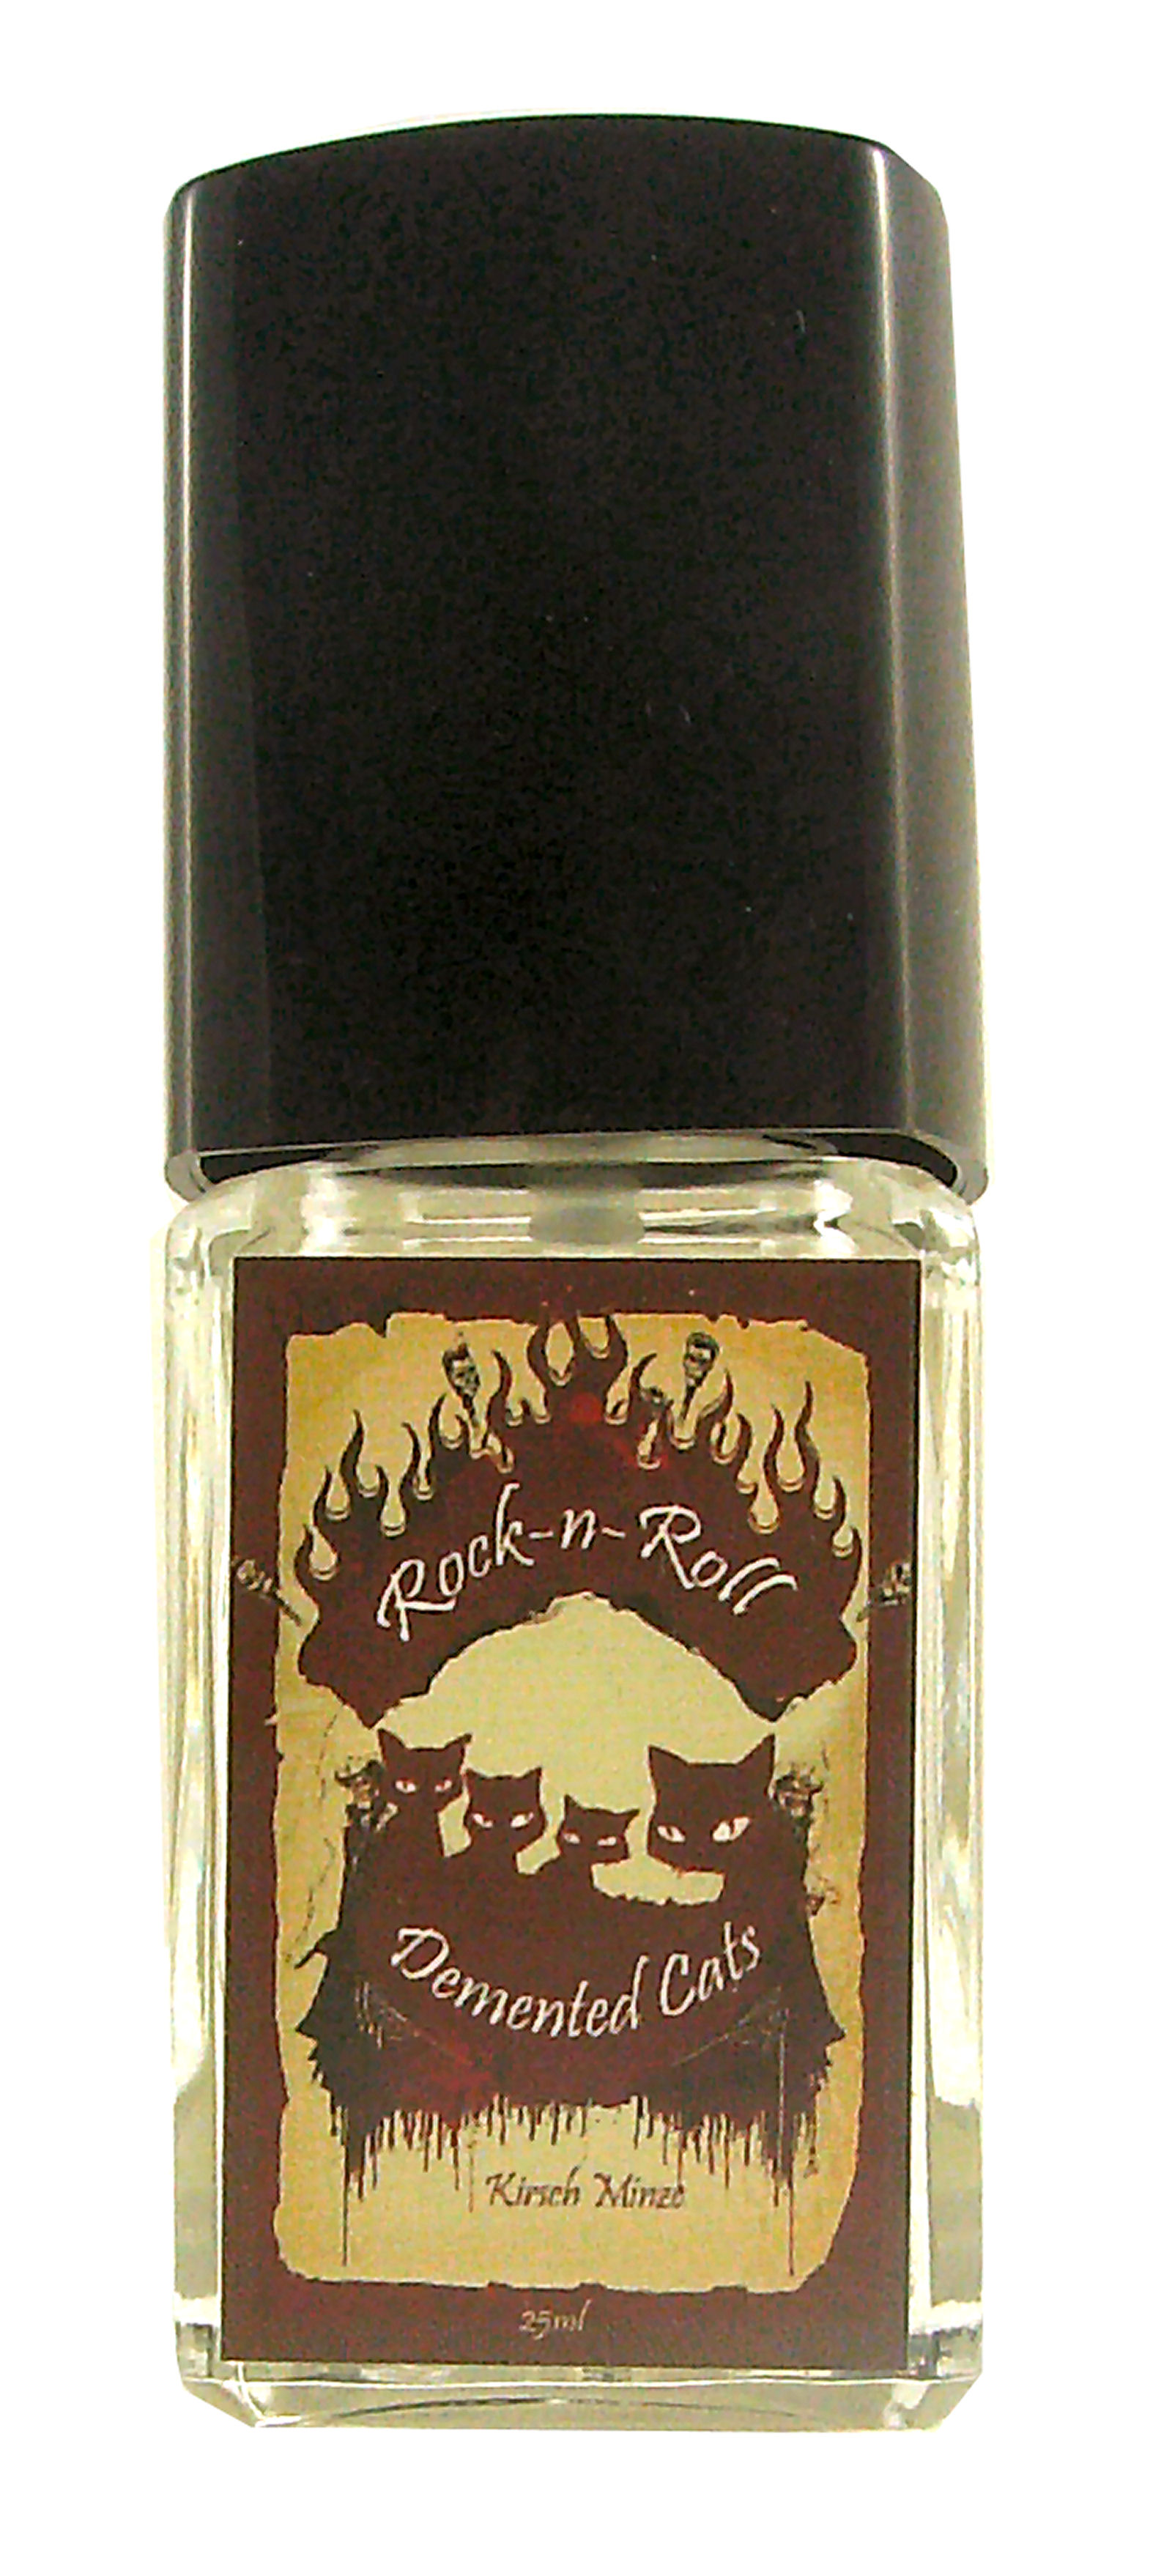 Demented Cats, Eau de Parfum 25ml